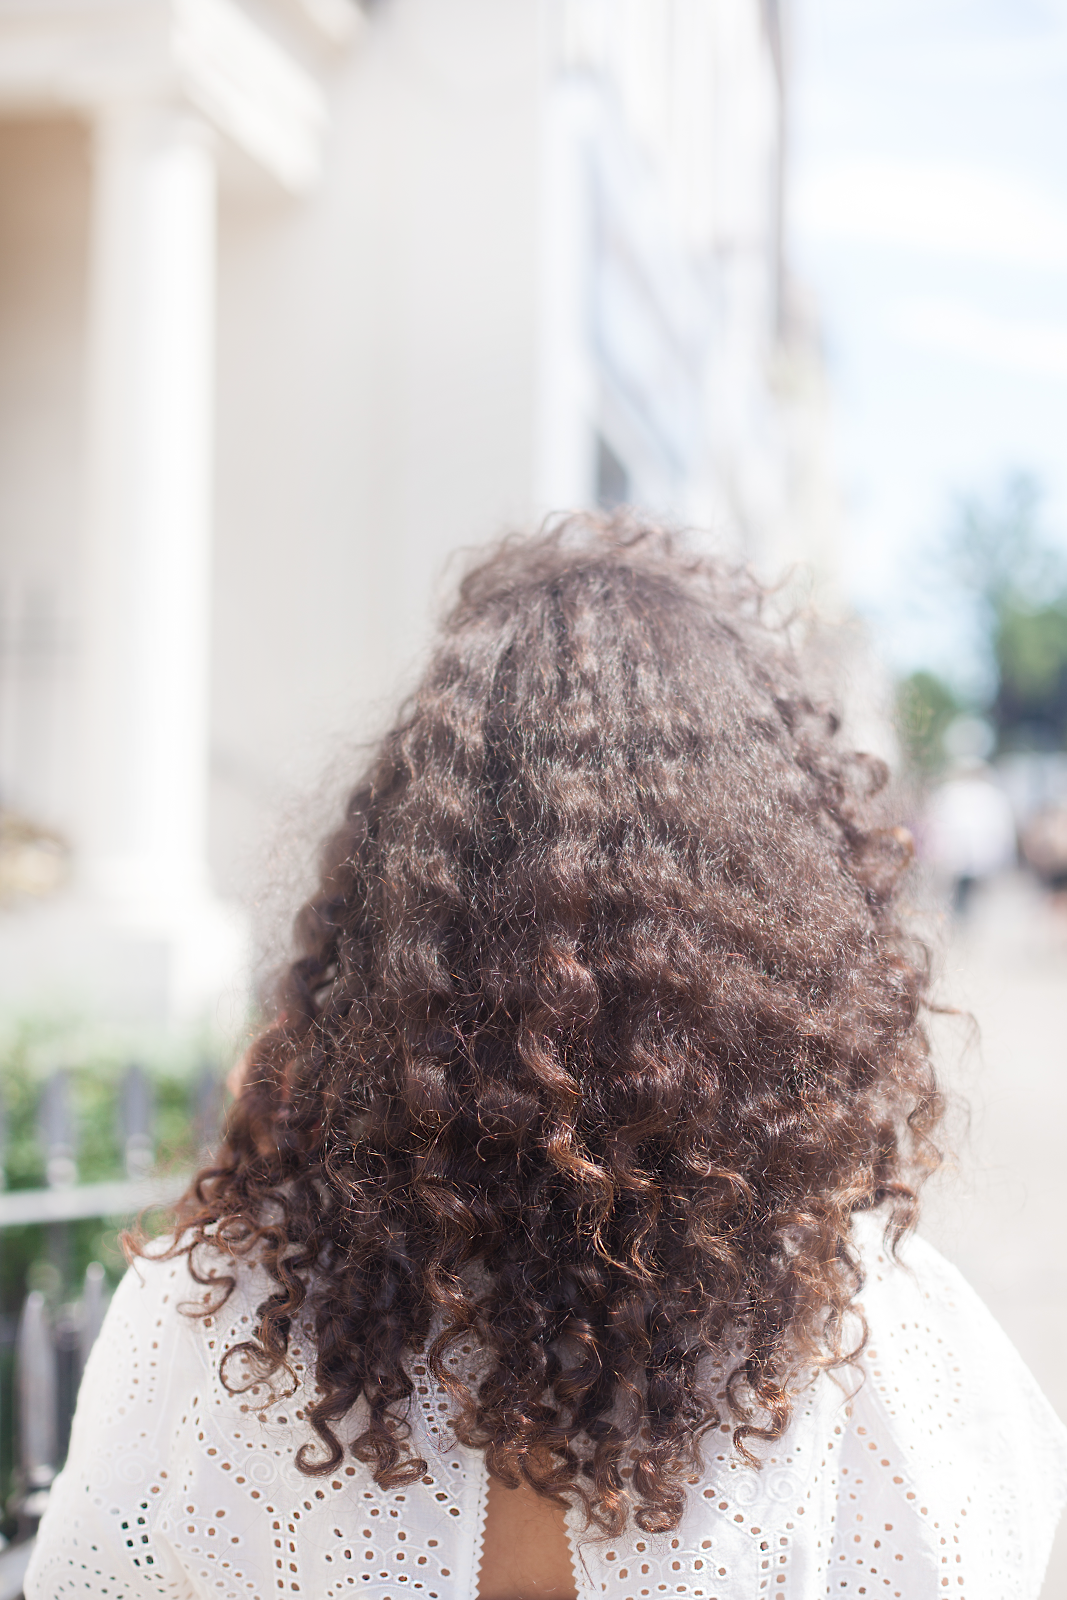 alayage, blonde, hair transition, hairdresser, salon, samantha cusick, nicky lazou, anasofiachic, ootd, lifestyle blogger, fashion blogger, beauty blogger, motd, outfit of the day, makeup of the day, hotd, hair of the day, boho, curly hair, curls, review